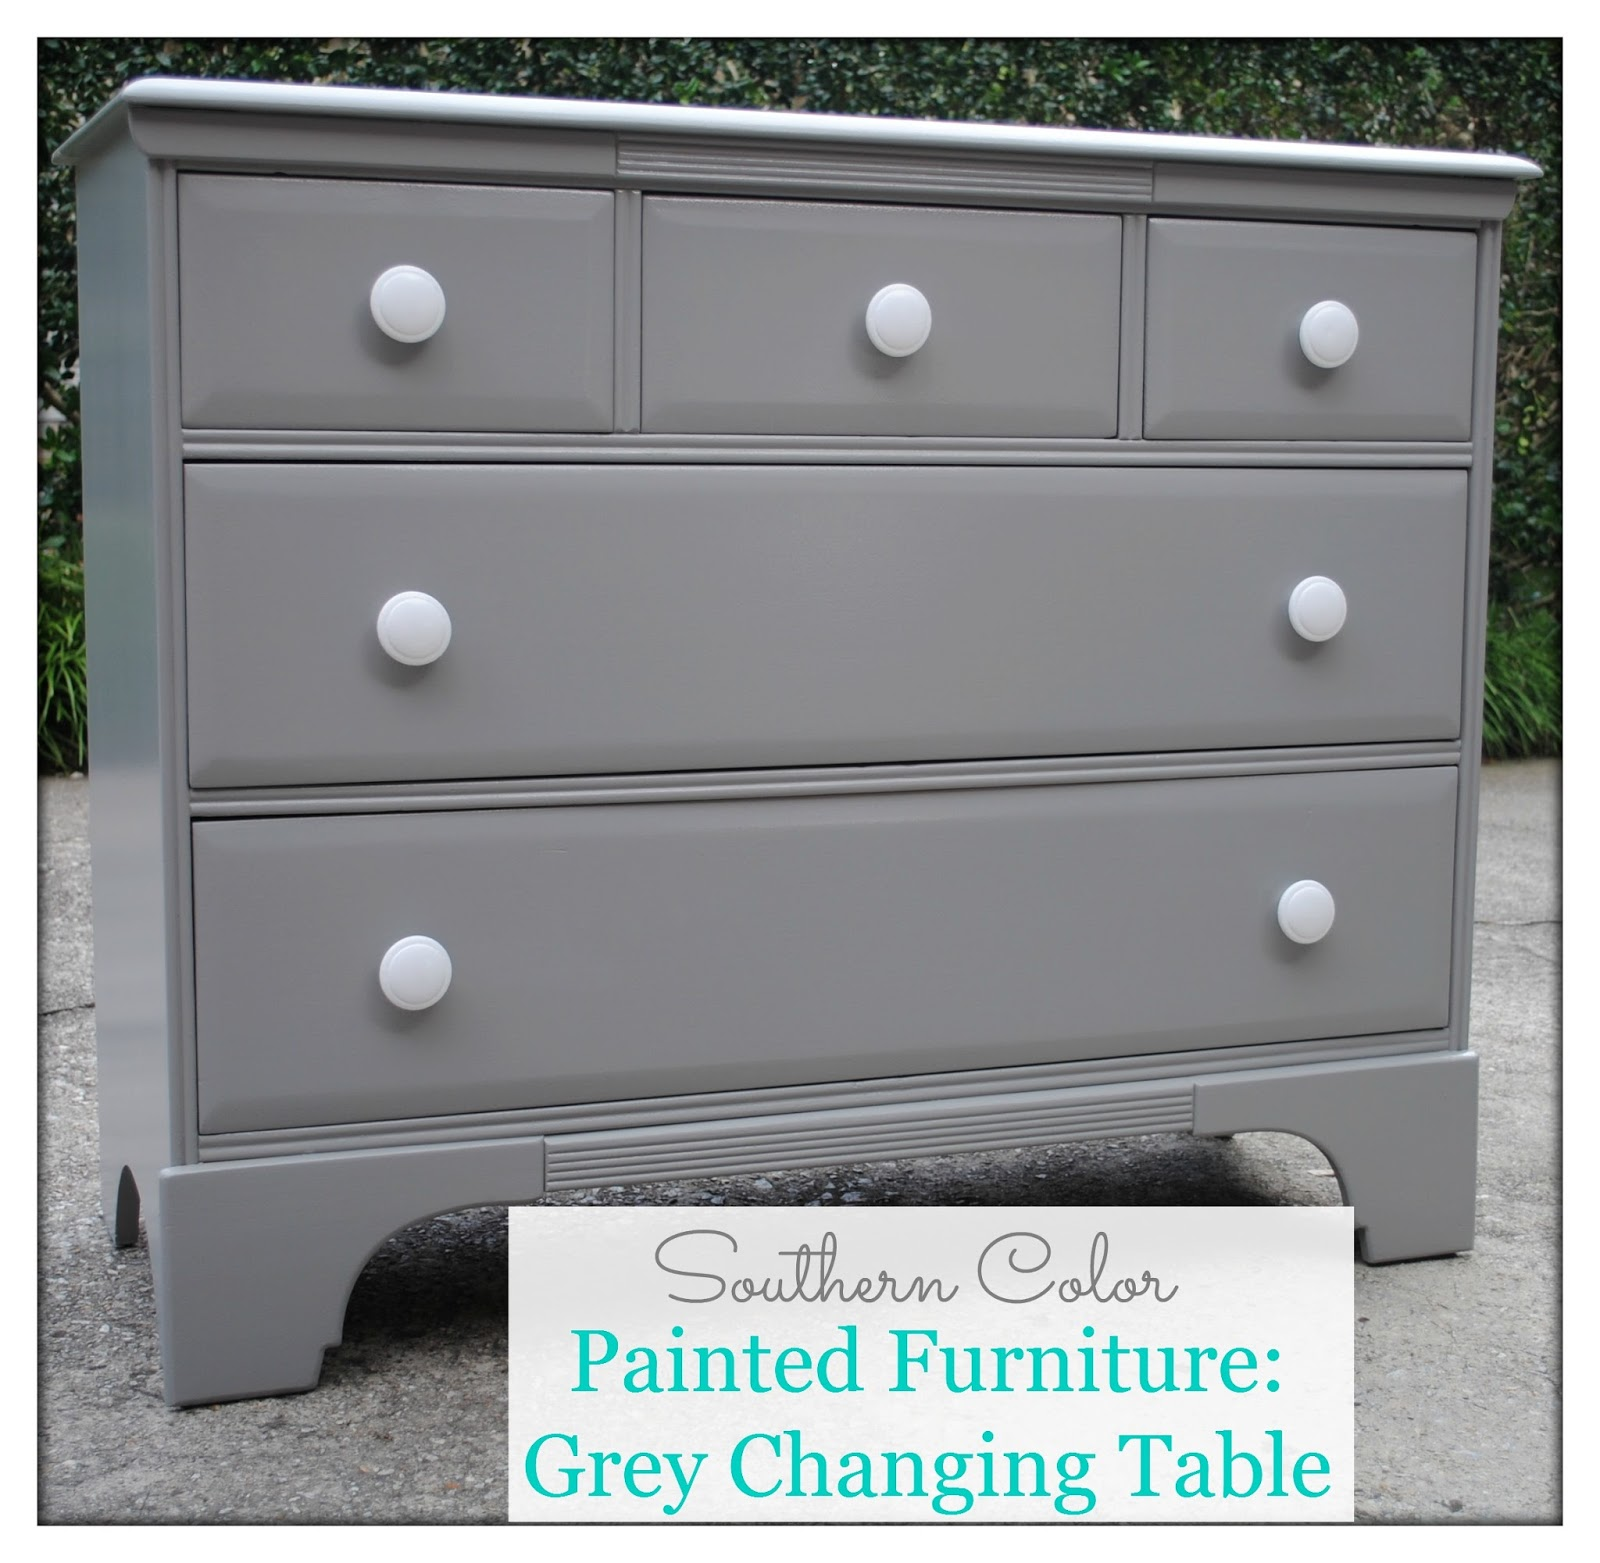 Painted Furniture: Grey Changing Table